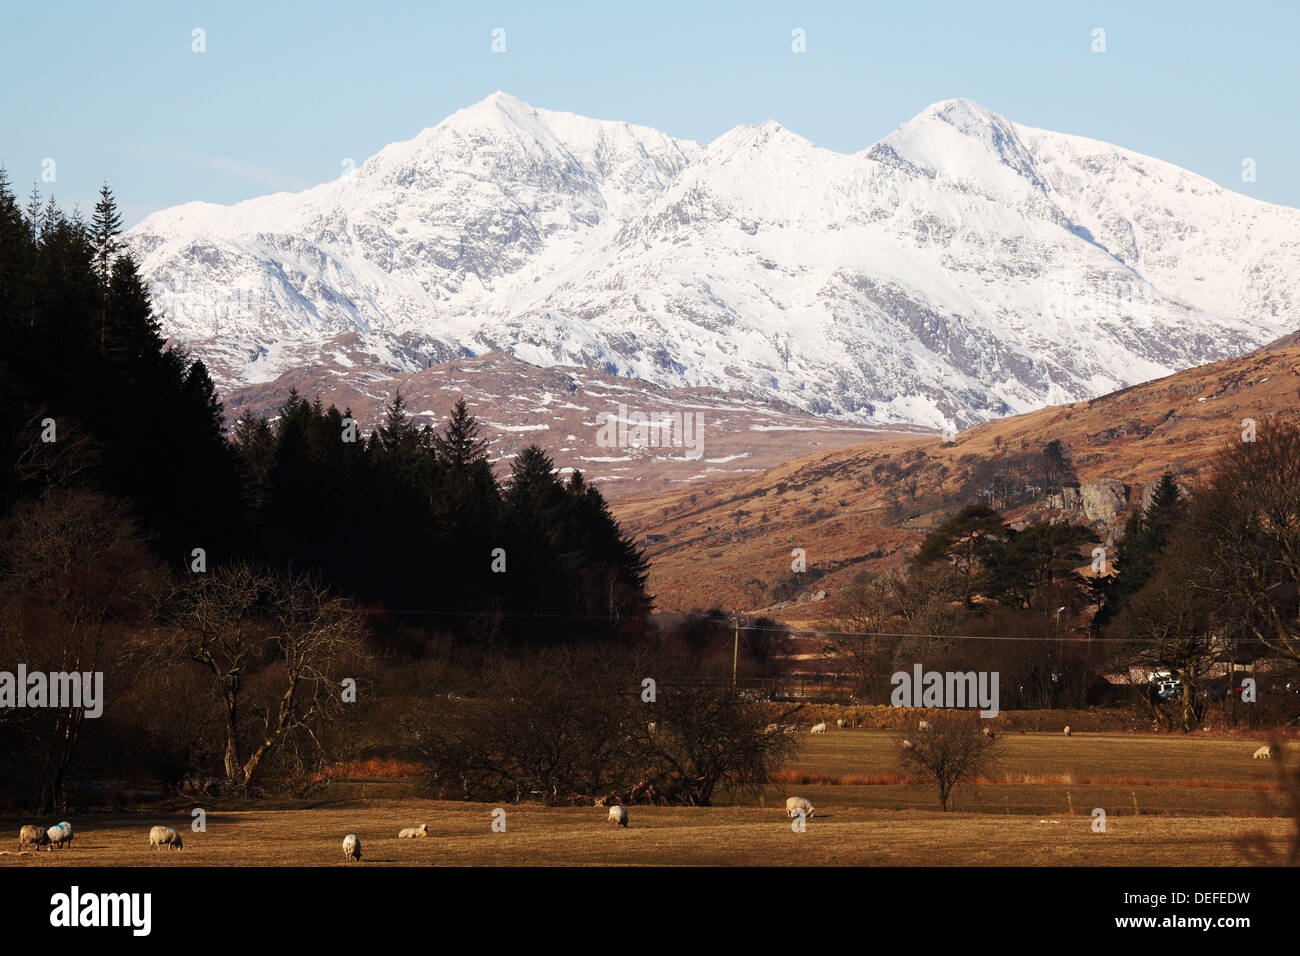 Mount Snowdon capped with snow as Welsh sheep graze on a sunny spring day  in Snowdonia National Park, Wales, United Kingdom Stock Photo